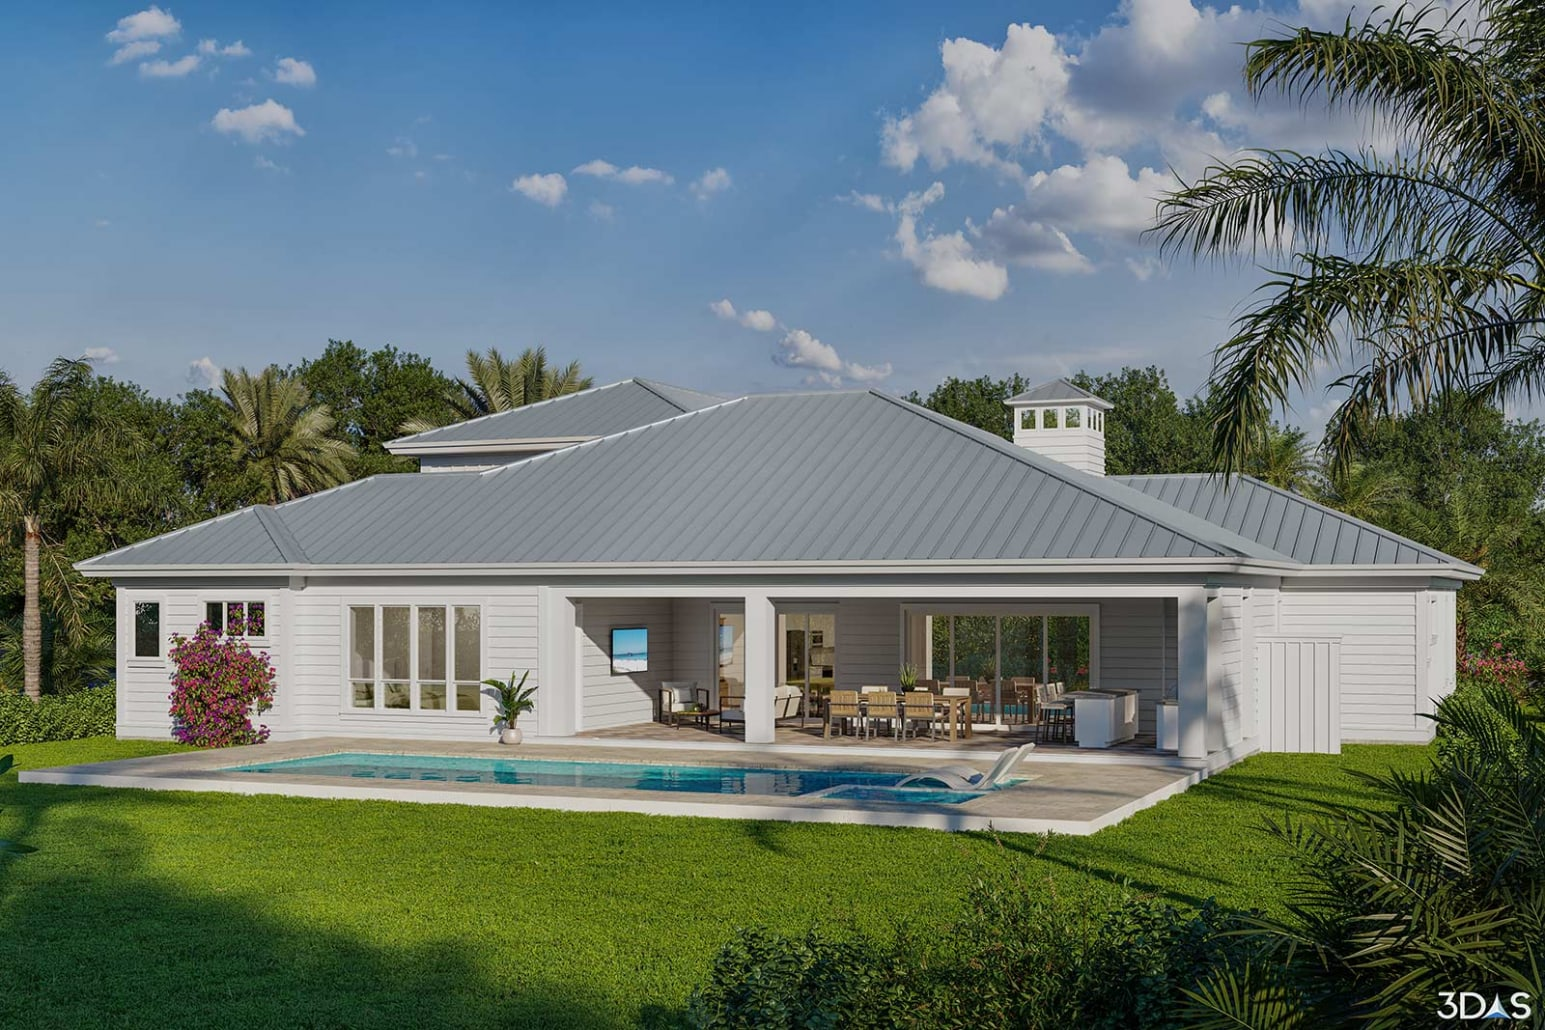 3D Elevation Residential Home in Naples, Florida